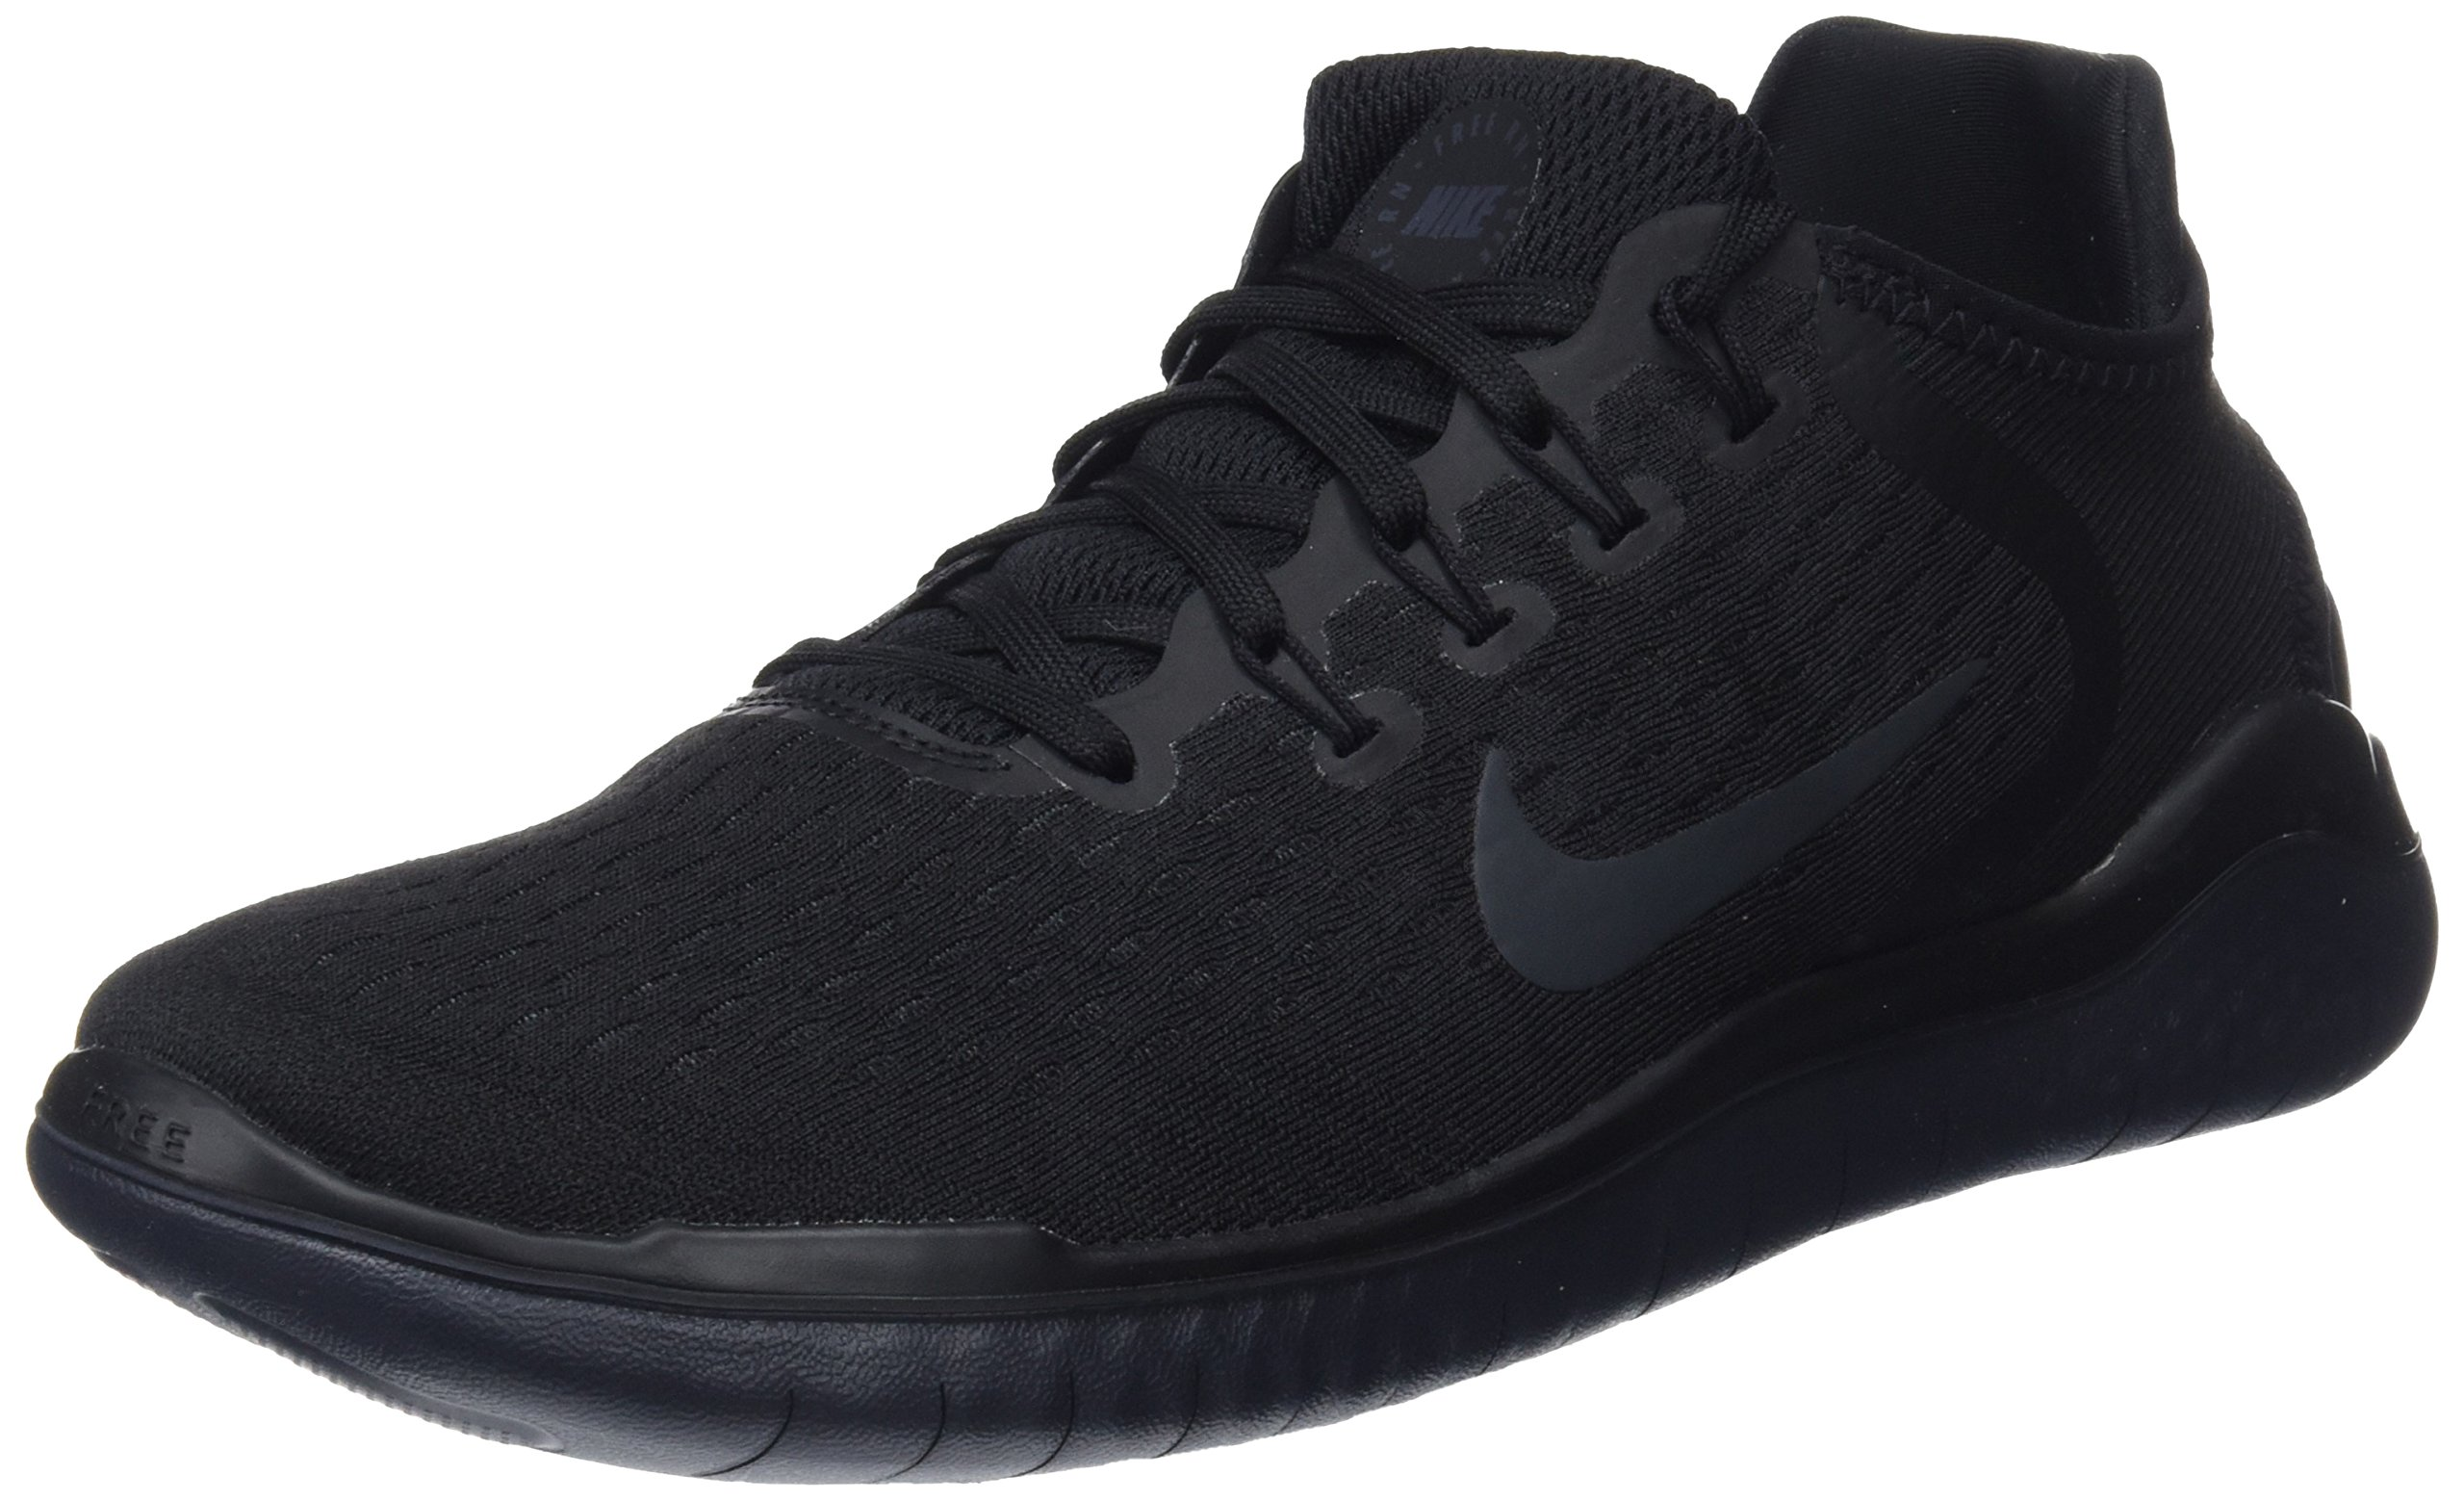 9ac5825626c78 Galleon - NIKE Mens Free-RN 2018 Running Sneakers Black Anthracite (15 D(M)  US)